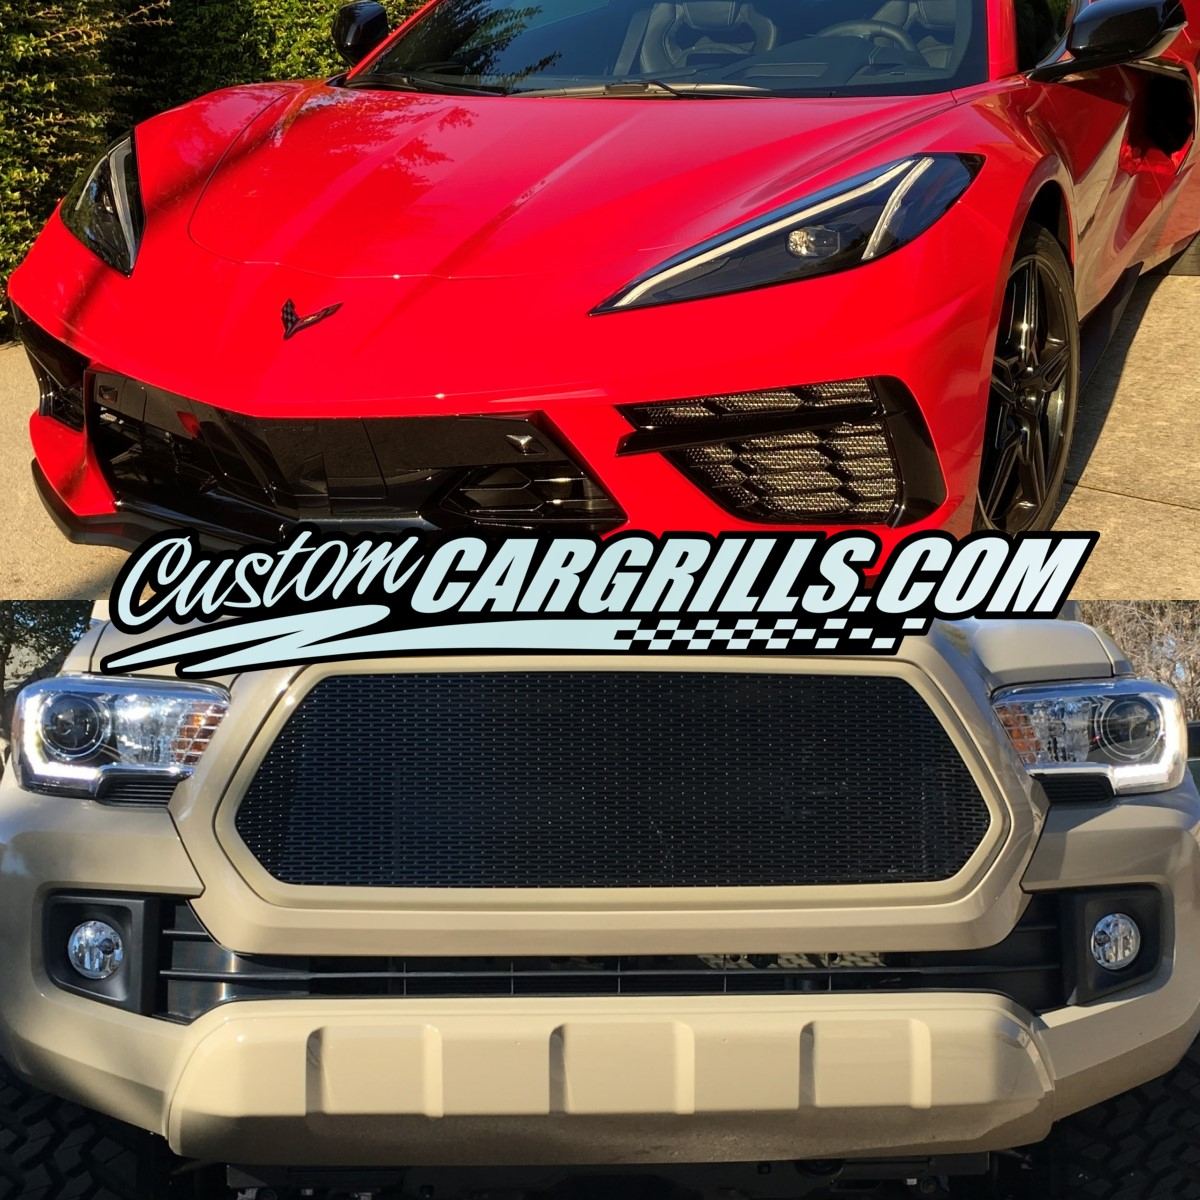 customcargrills.com - Custom Car and Truck Grills - Mesh Grill Sheets and More